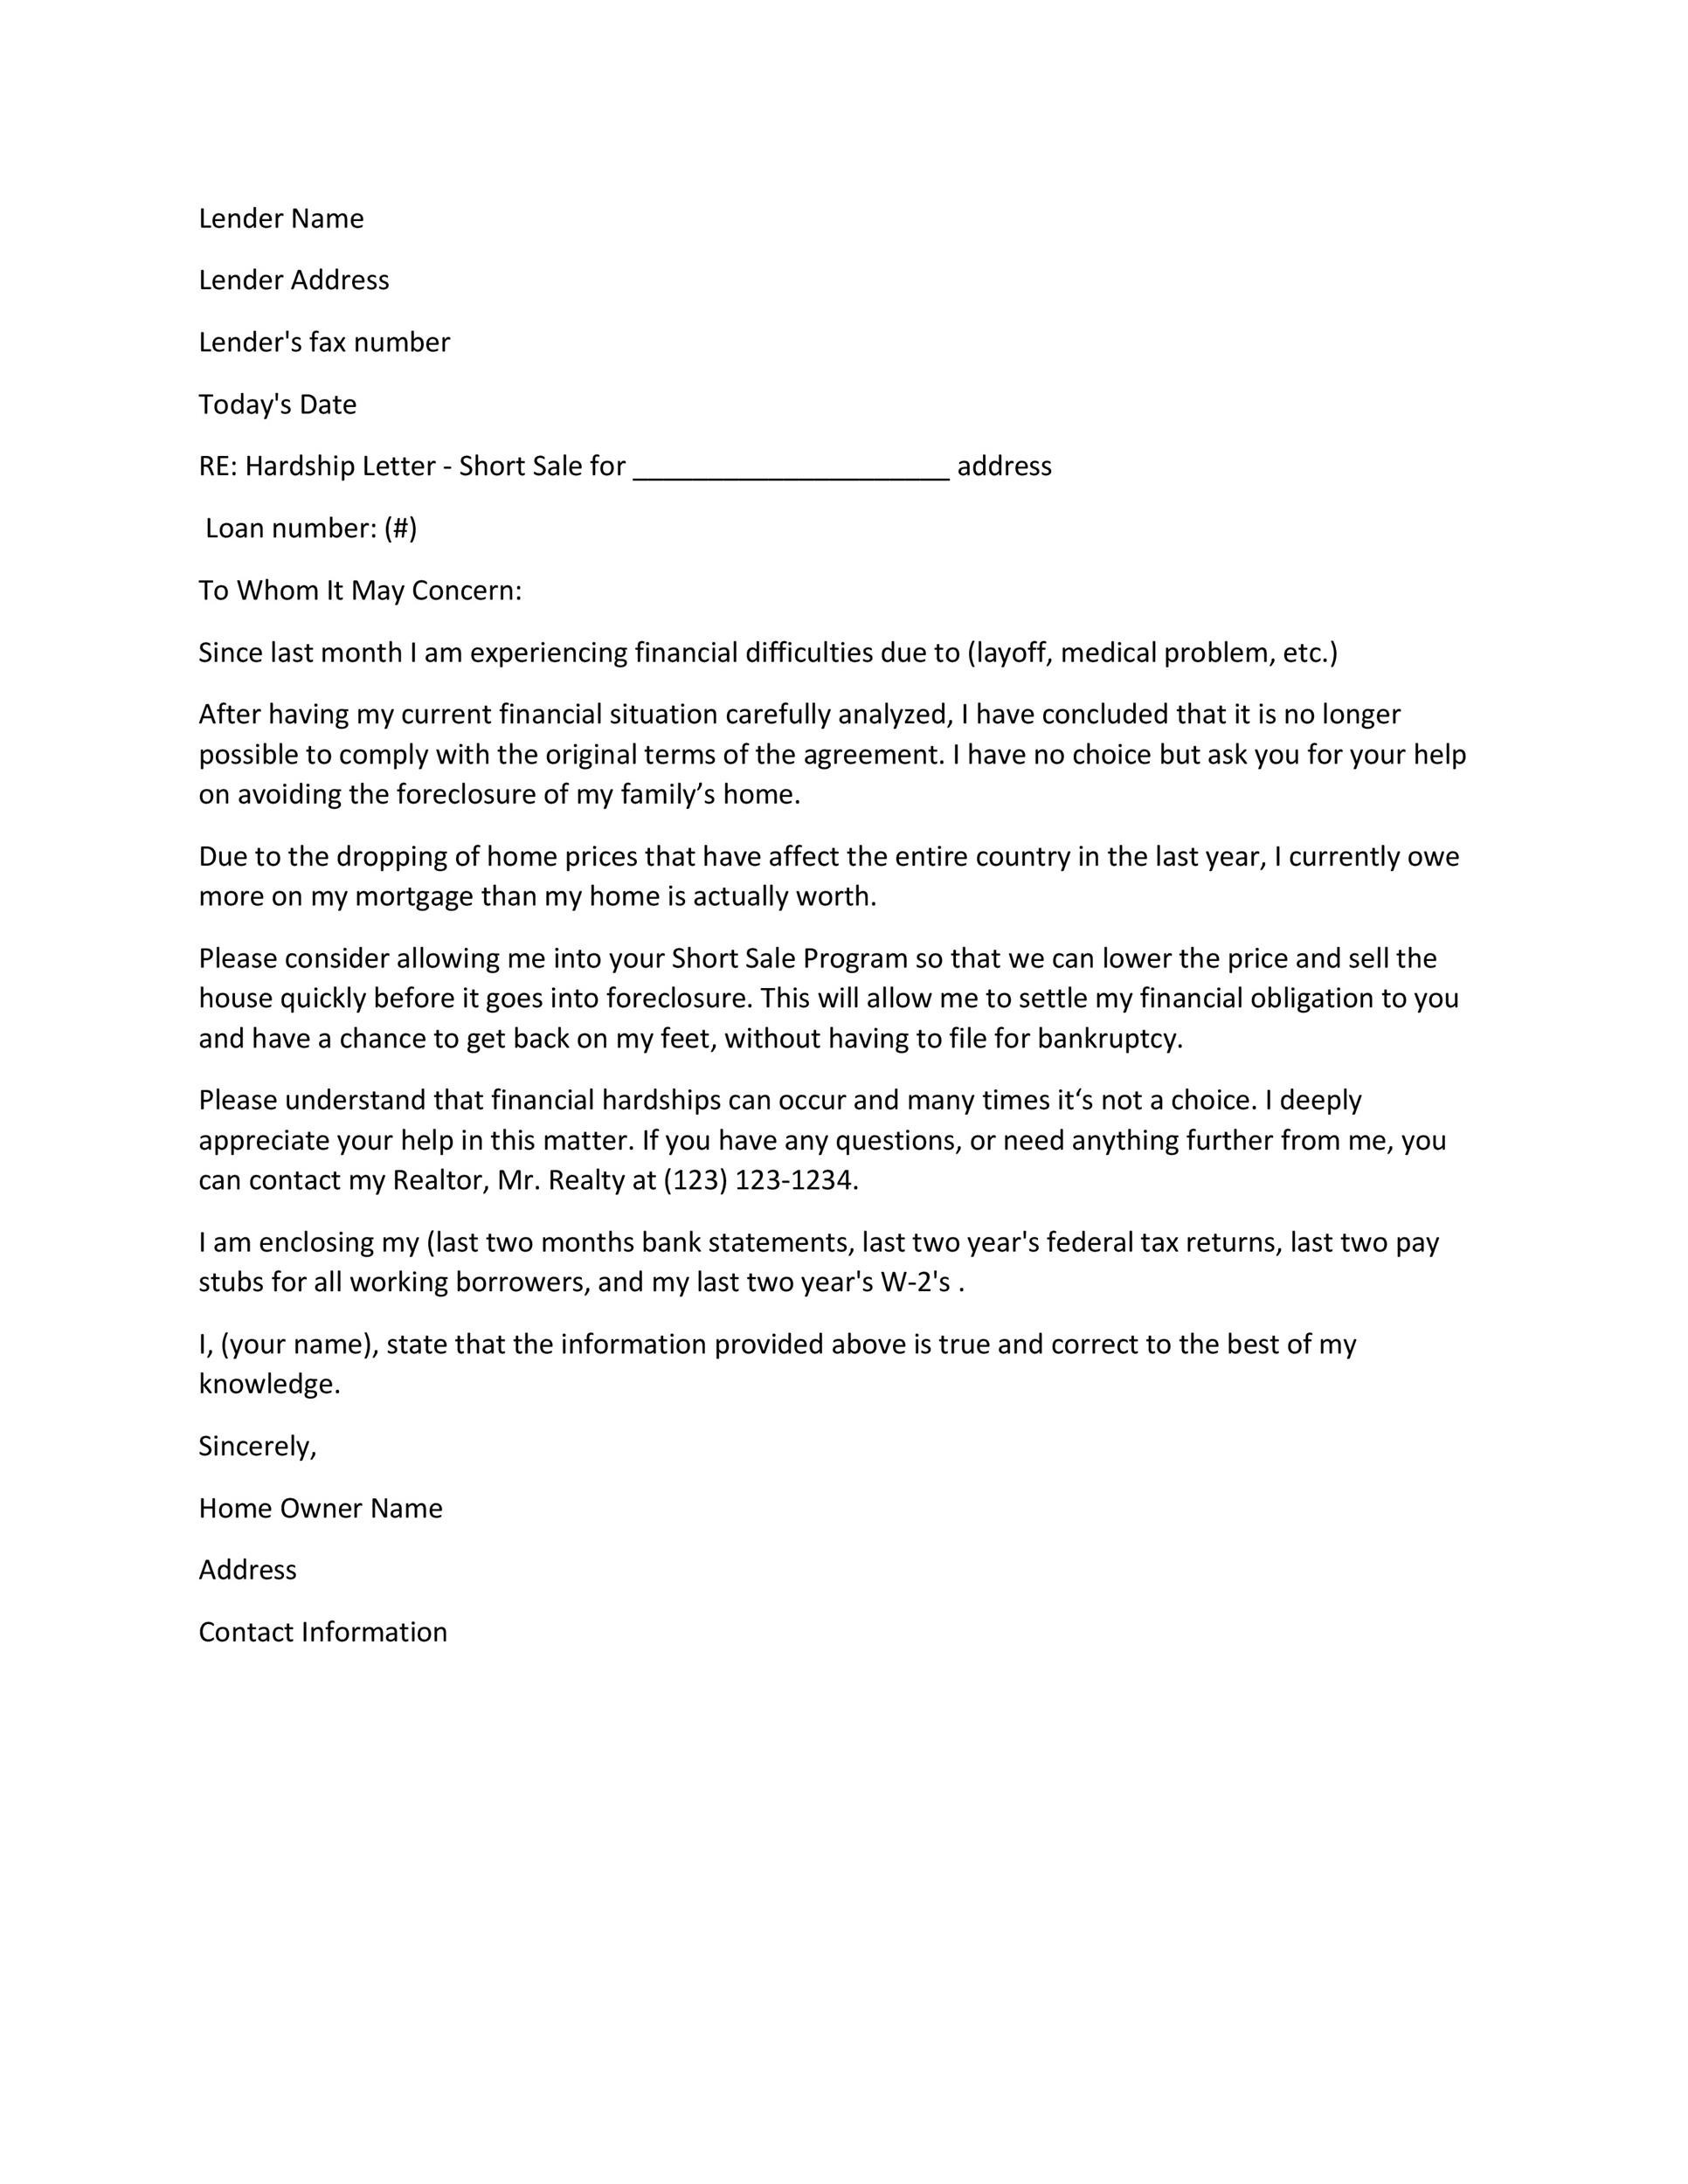 Hardship-Letter-Template-29 Sample Hardship Letter Template Due Damage Of Home on